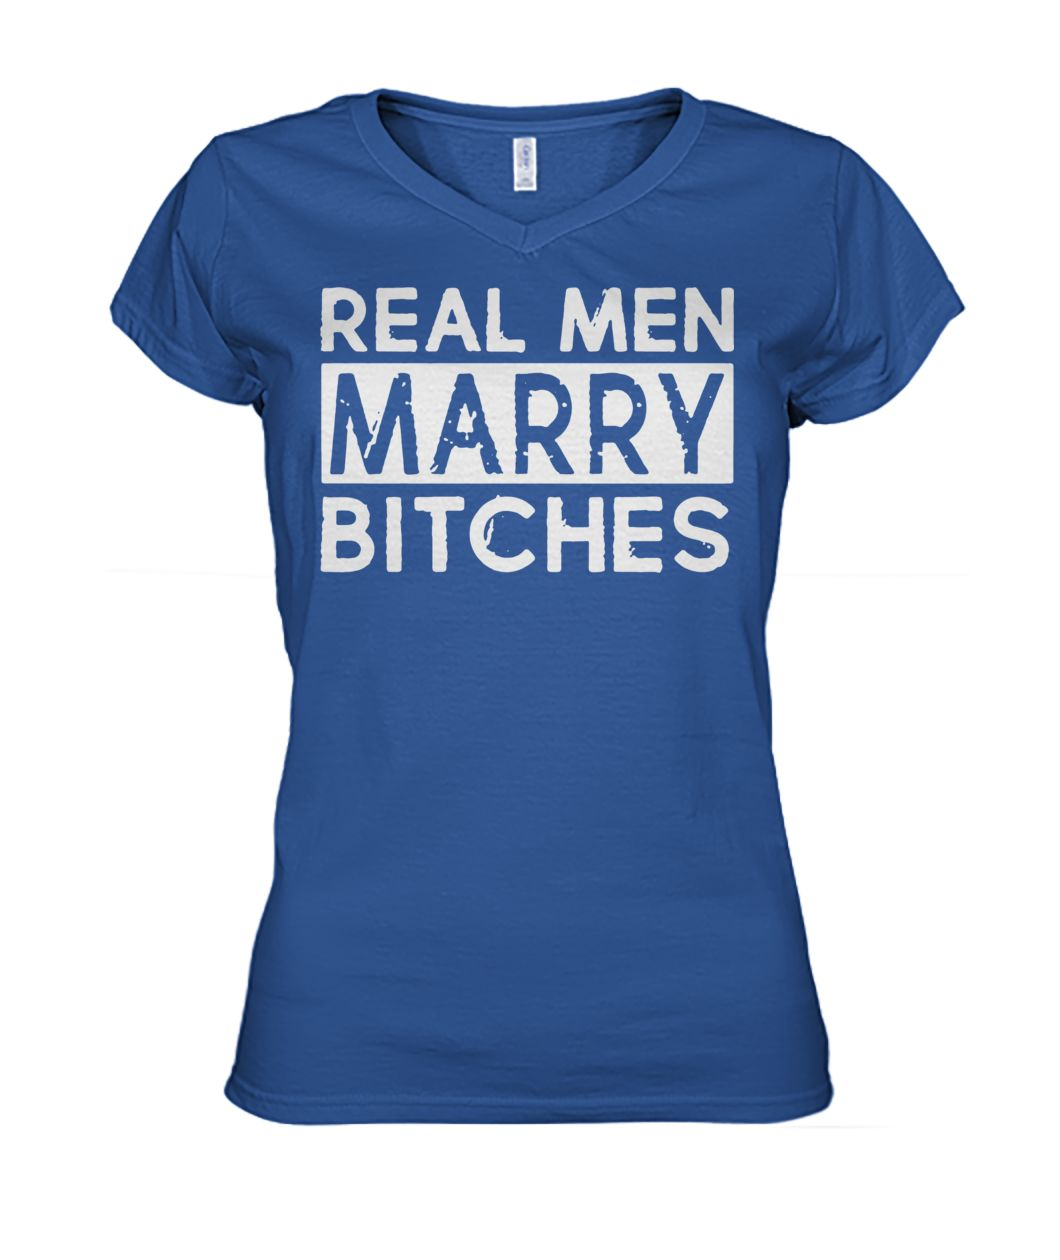 Real men marry bitches women's v-neck